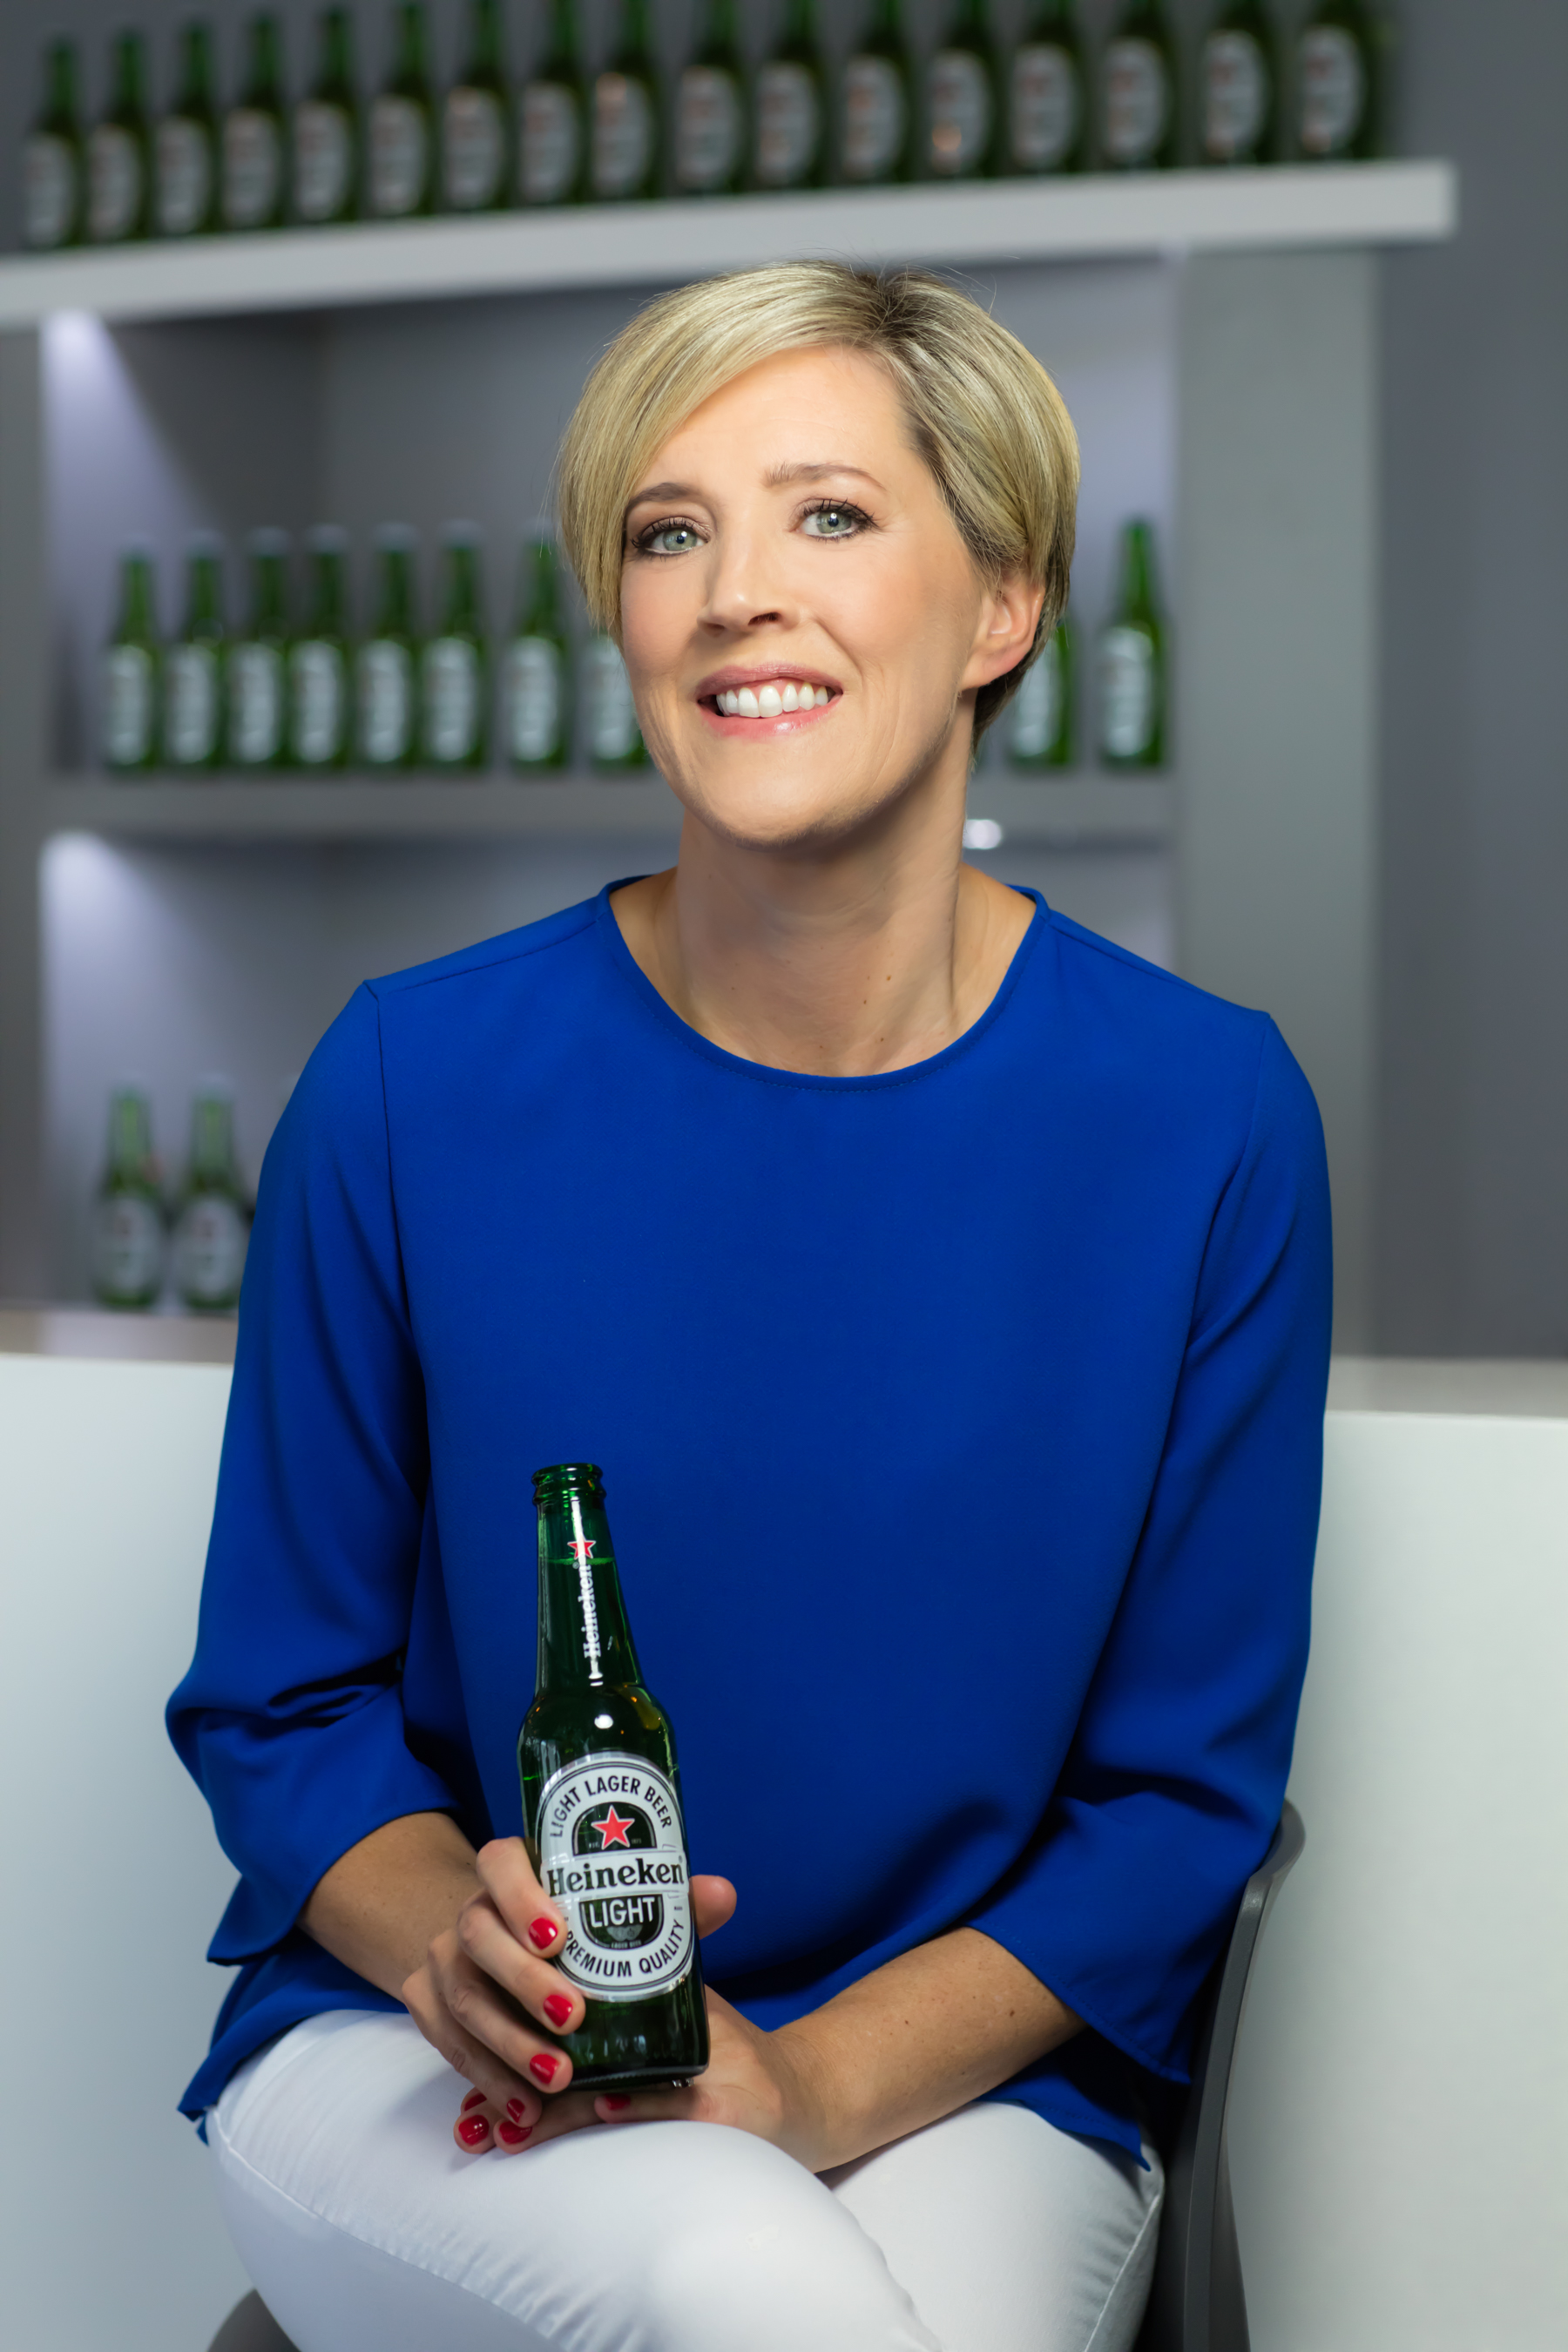 Sharon walsh leaves ireland to head up heineken 39 s cider division in amsterdam - Heineken amsterdam head office ...